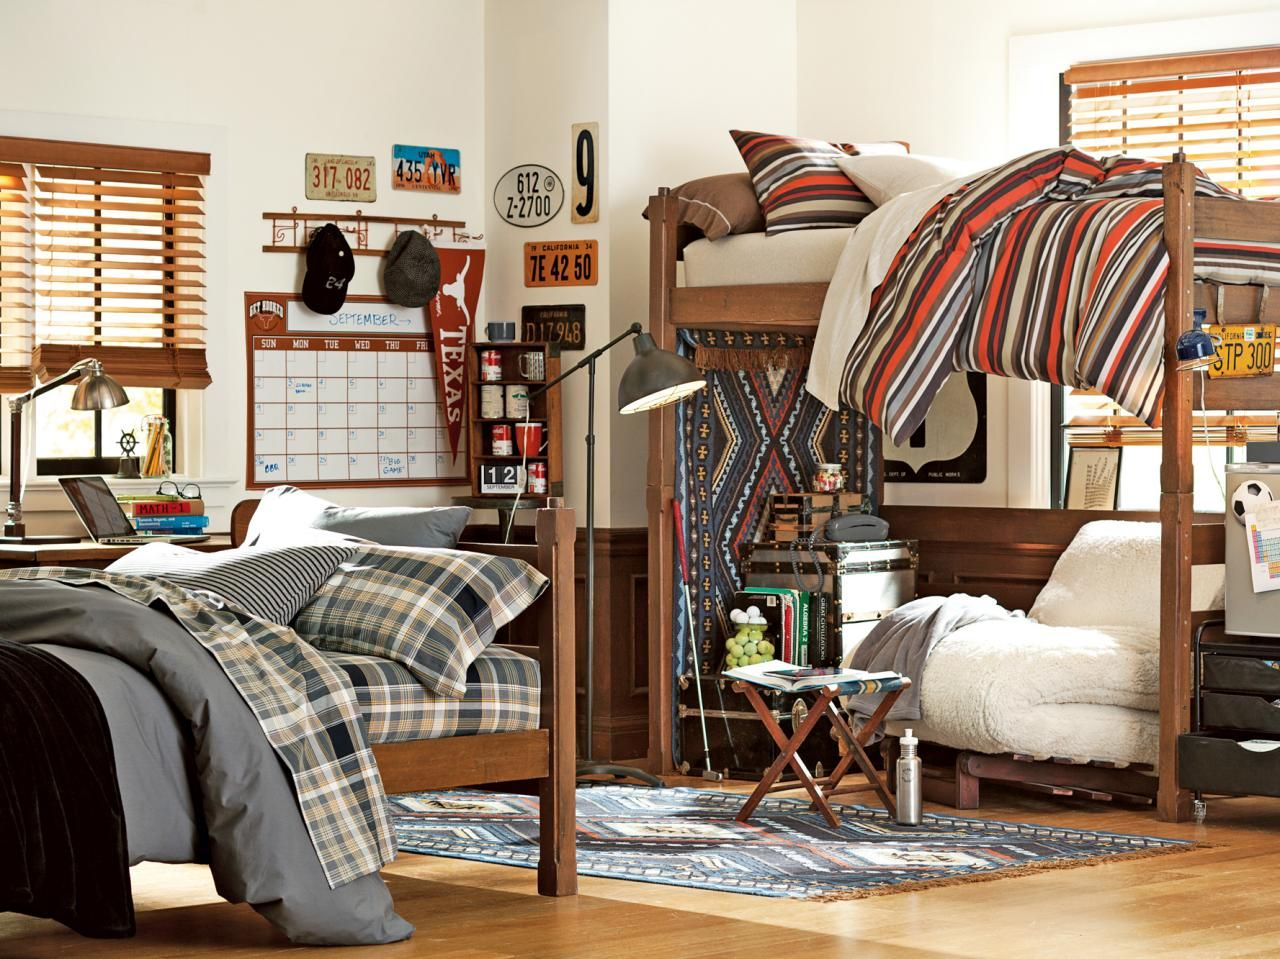 Dorm Room Decorating Ideas Decor Essentials Hgtv